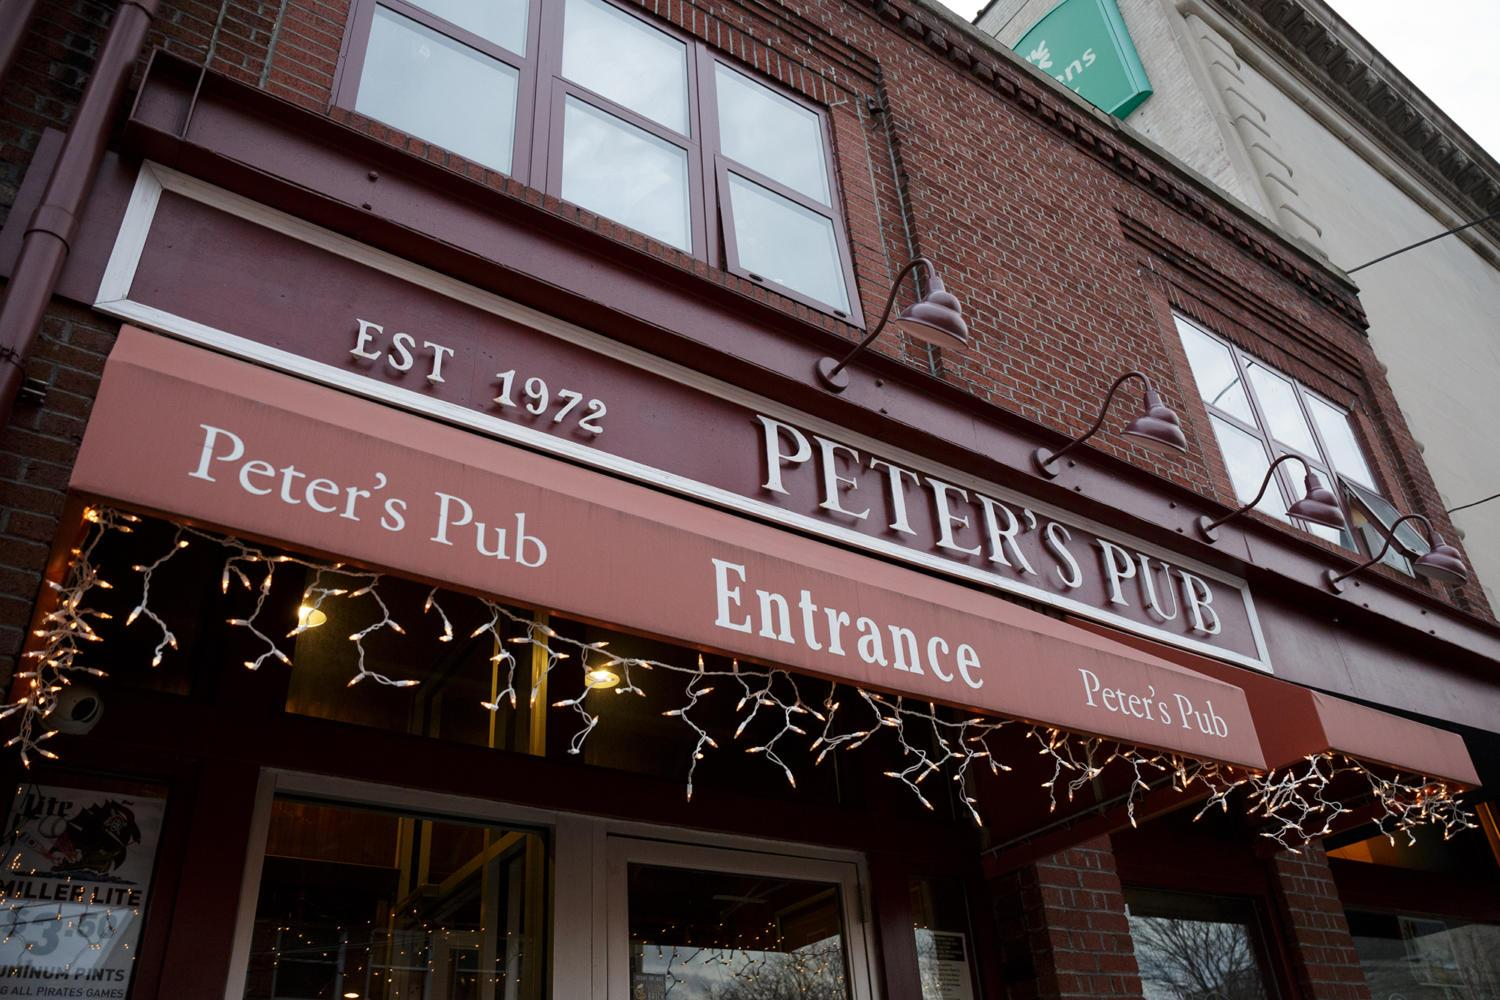 The exterior of Peter's Pub in Oakland. (Photo by Thomas Yang | Visual Editor)